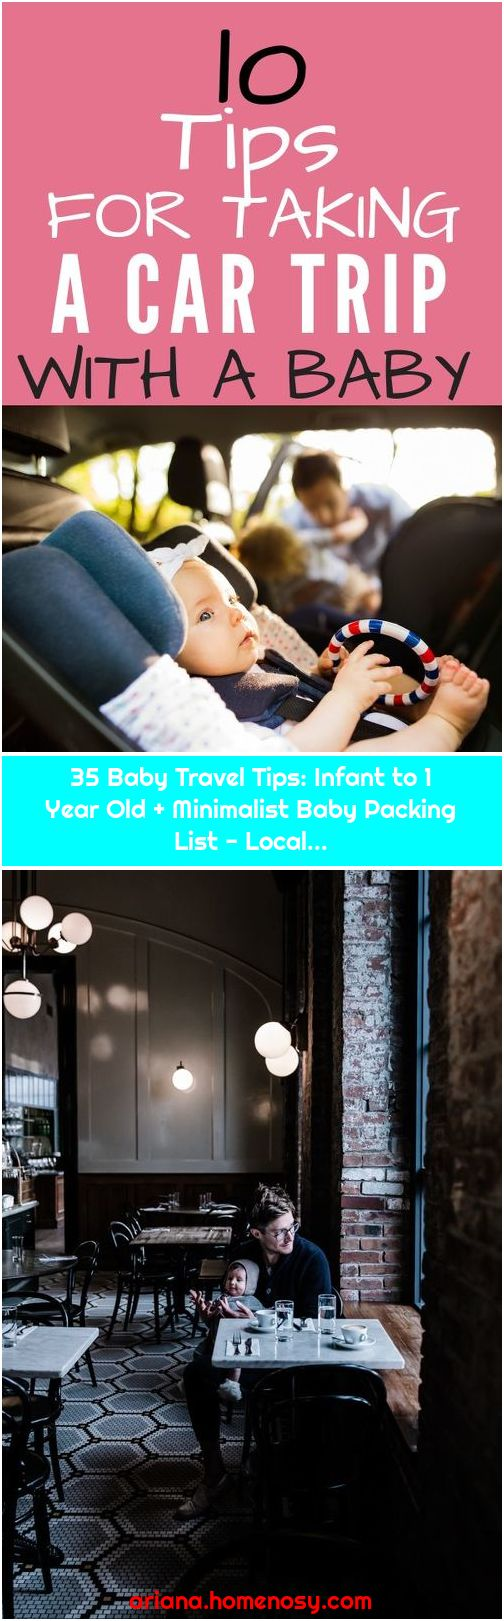 35 Baby Travel Tips: Infant to 1 Year Old + Minimalist Baby Packing List - Local...